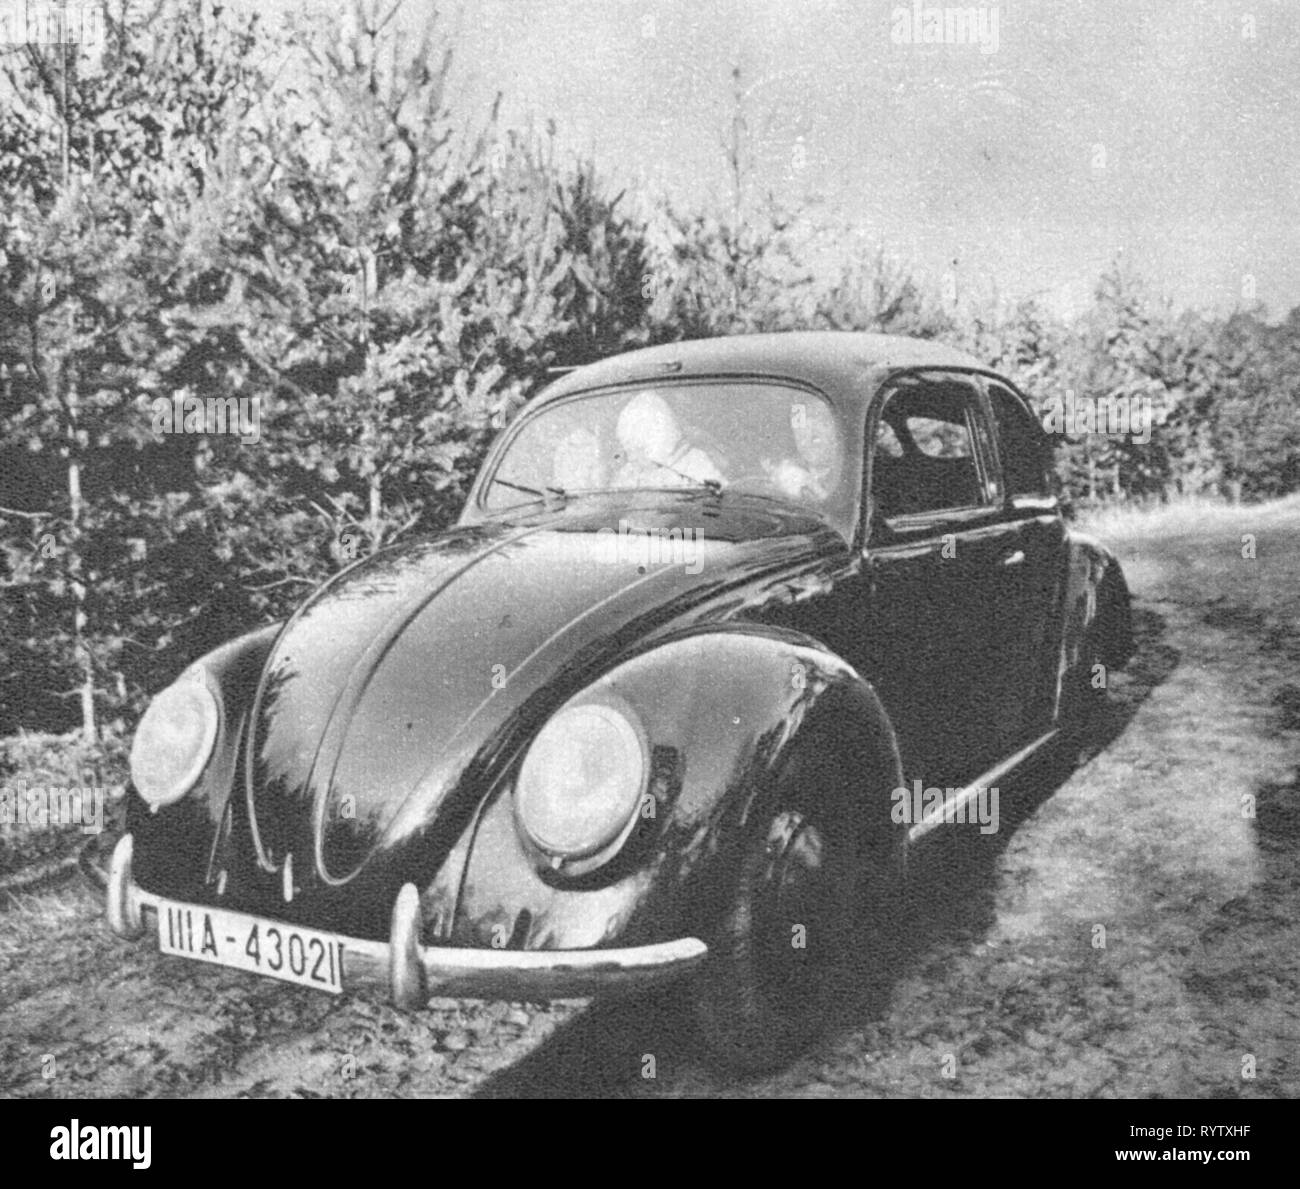 Nazism / National Socialism, organisations, Strenght Through Joy (Kraft durch Freude, KdF), KdF car, view from ahead left, 1939, Additional-Rights-Clearance-Info-Not-Available - Stock Image